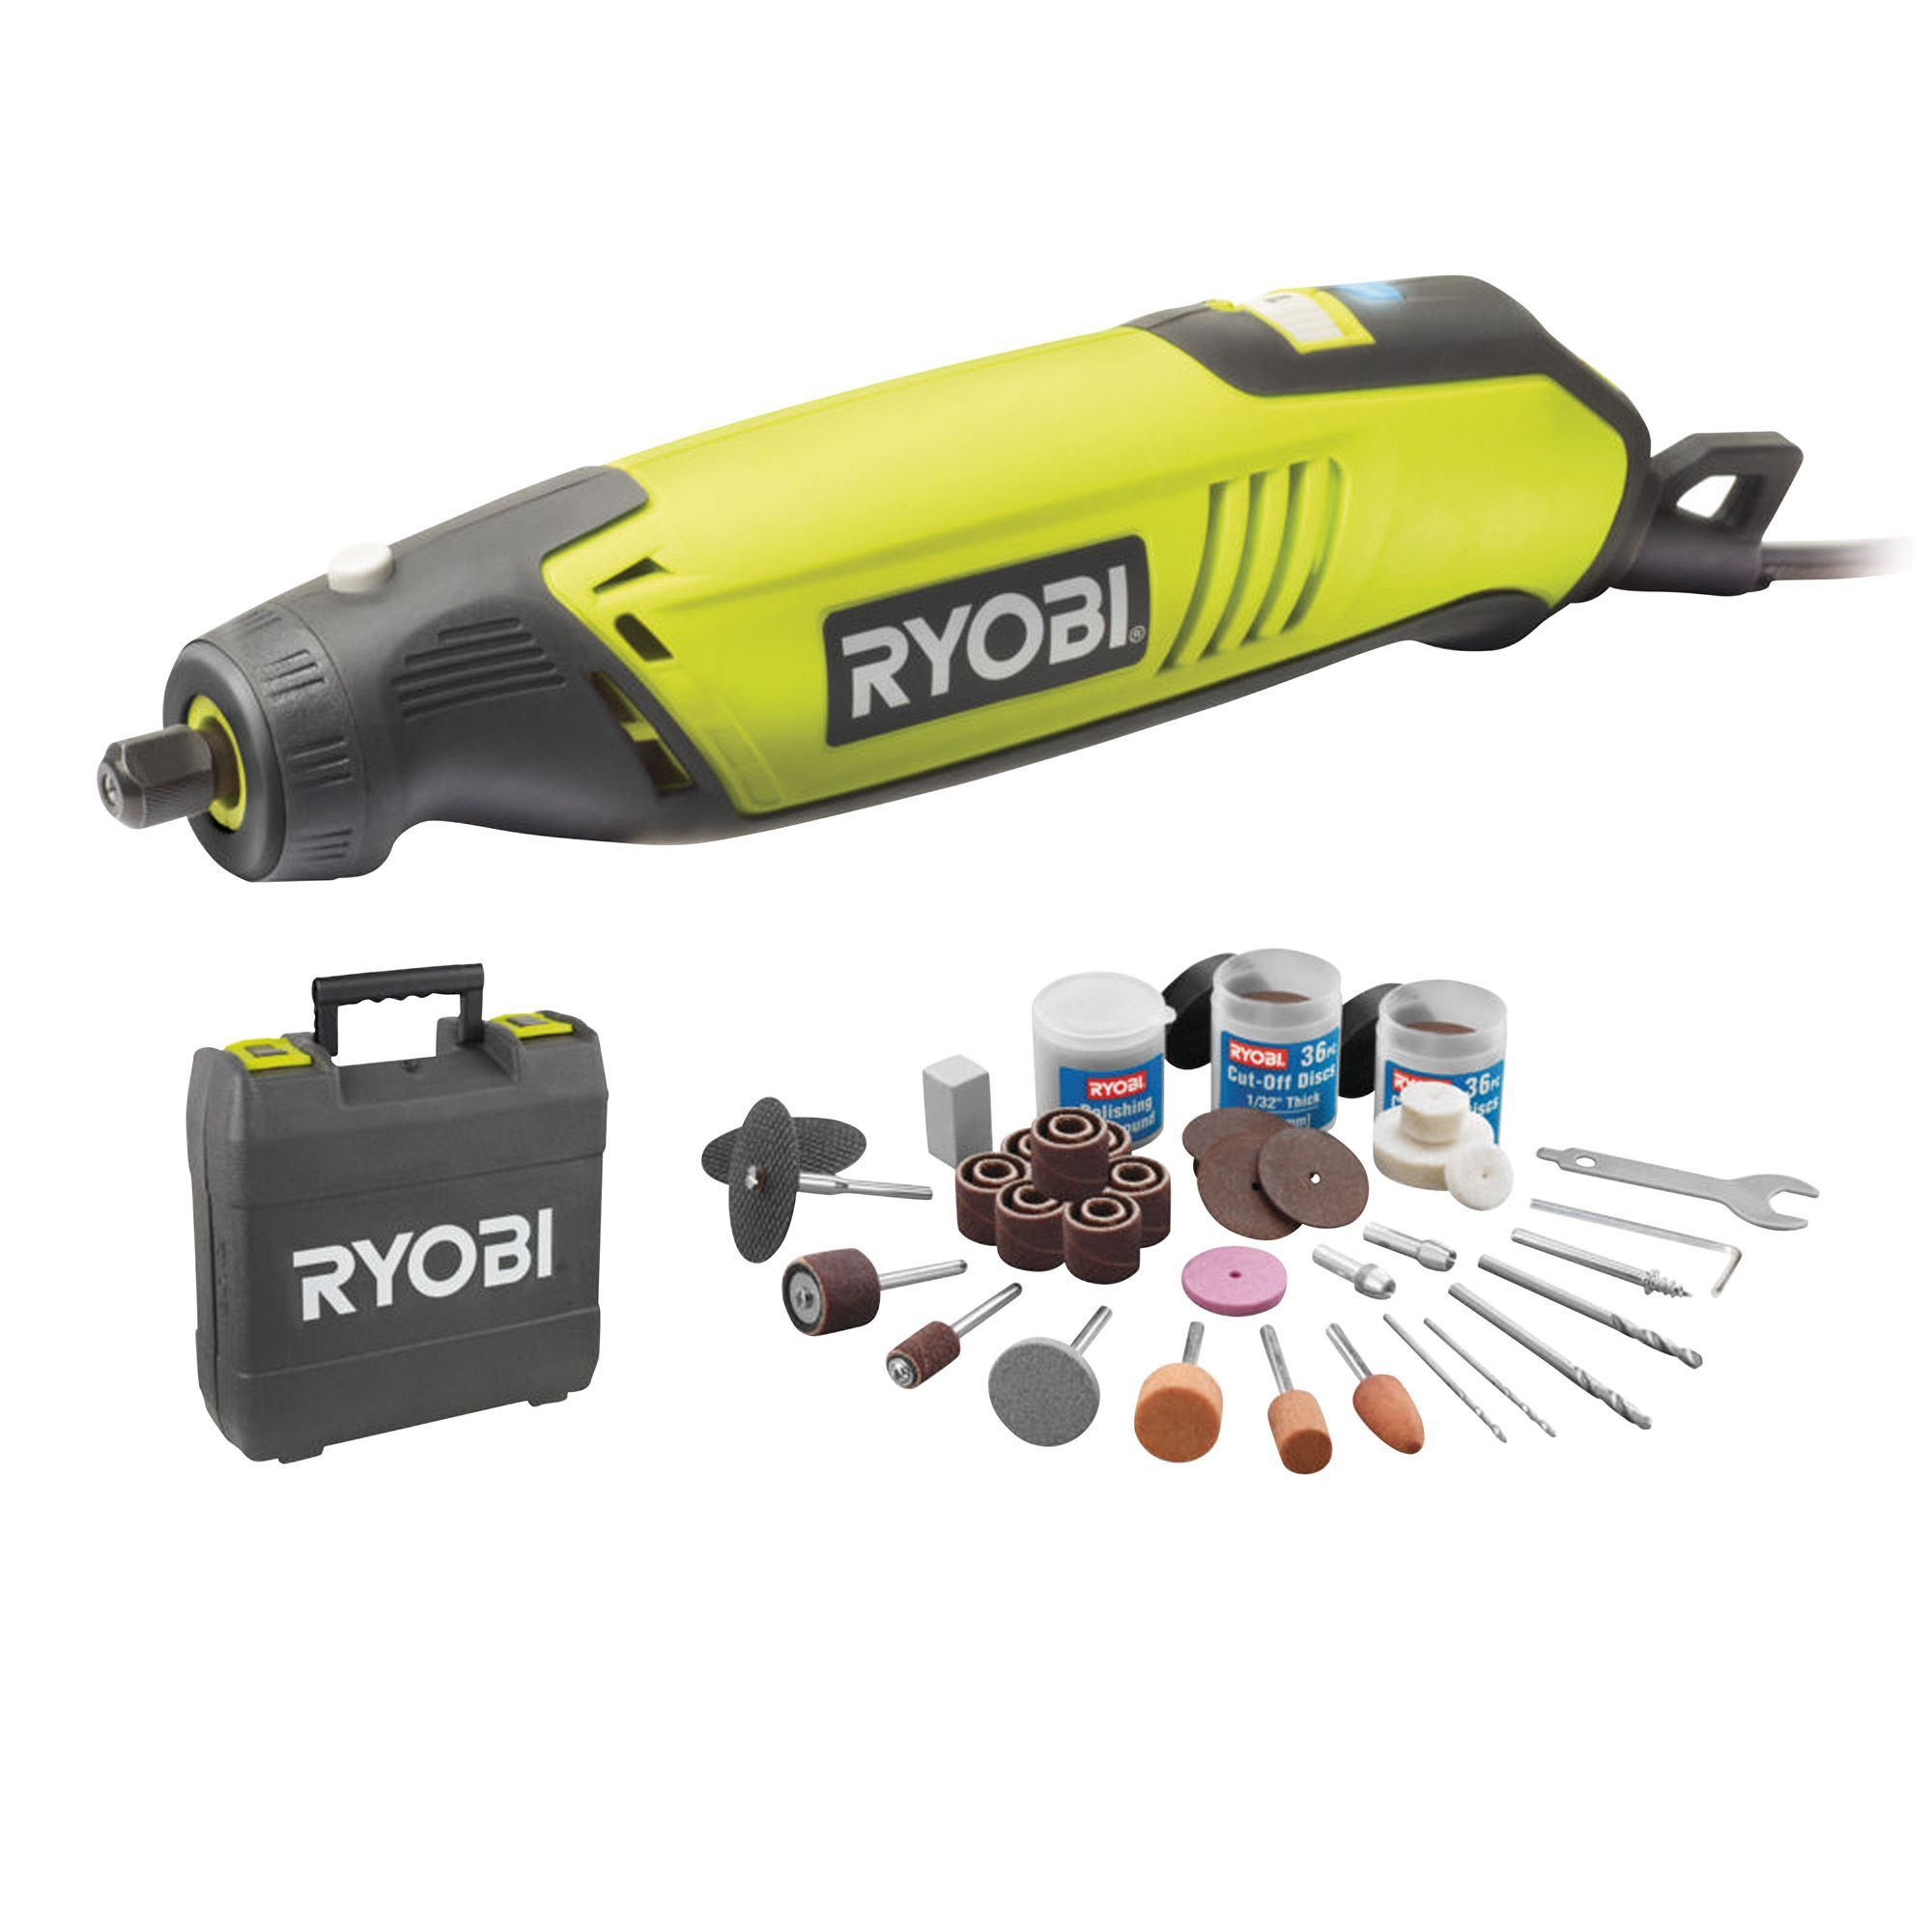 Ryobi Eht150v Rotary Tool Departments Diy At B Amp Q